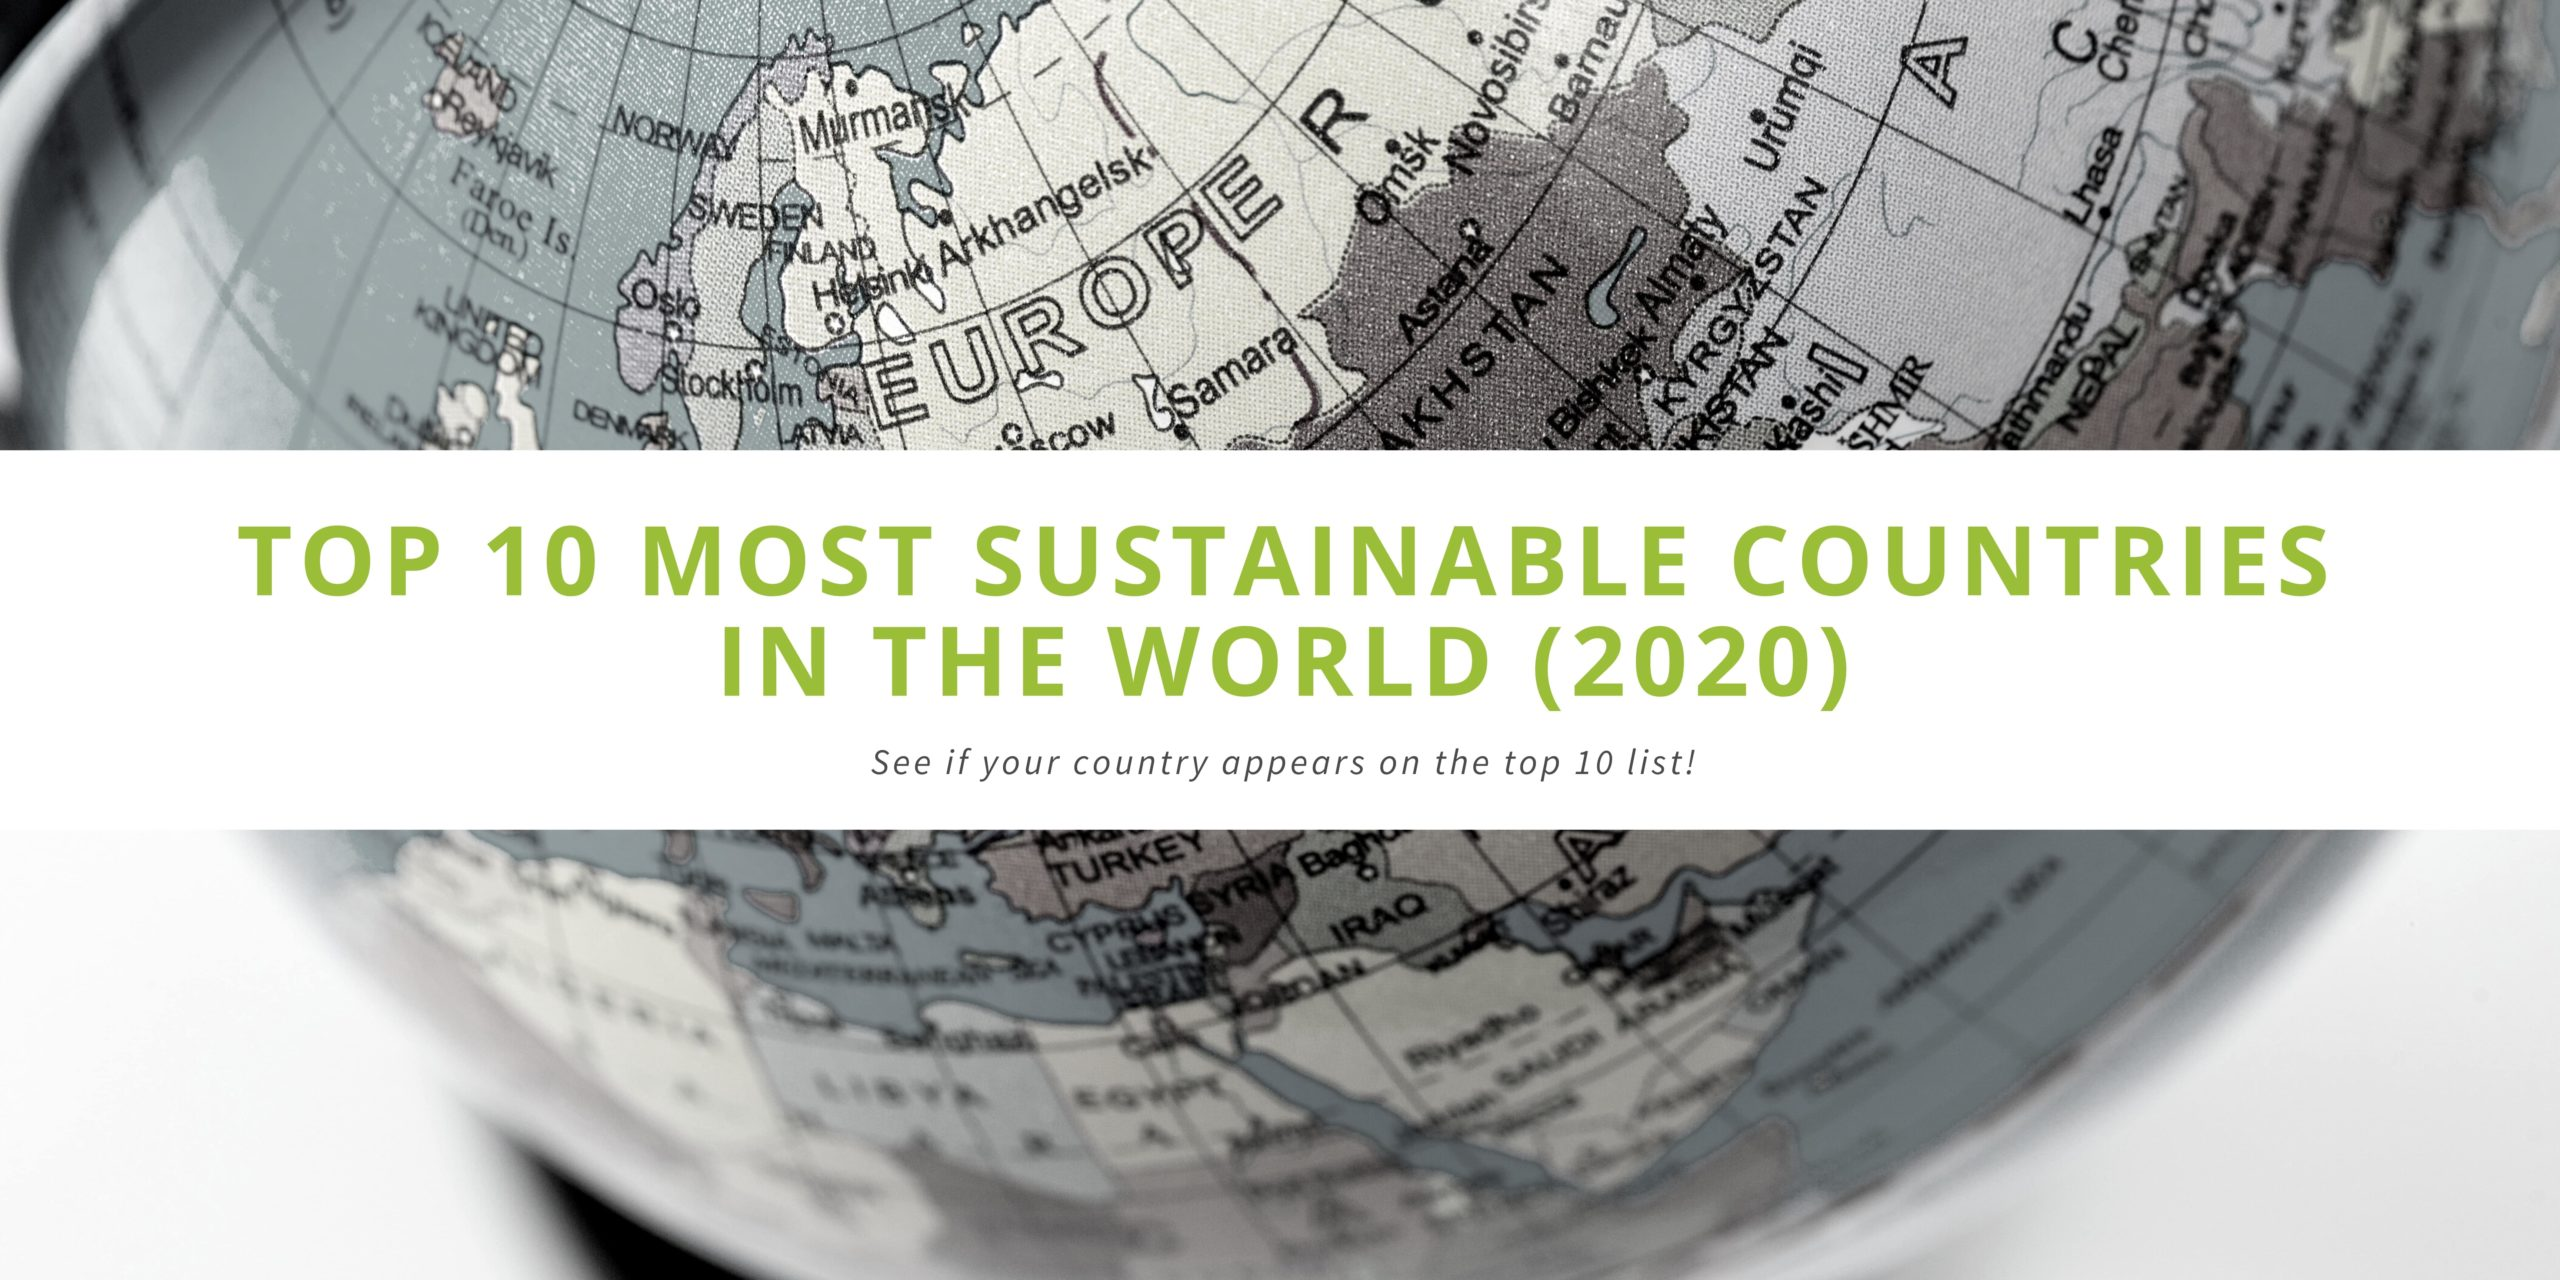 Top 10 Most Sustainable Countries in the World (2020)